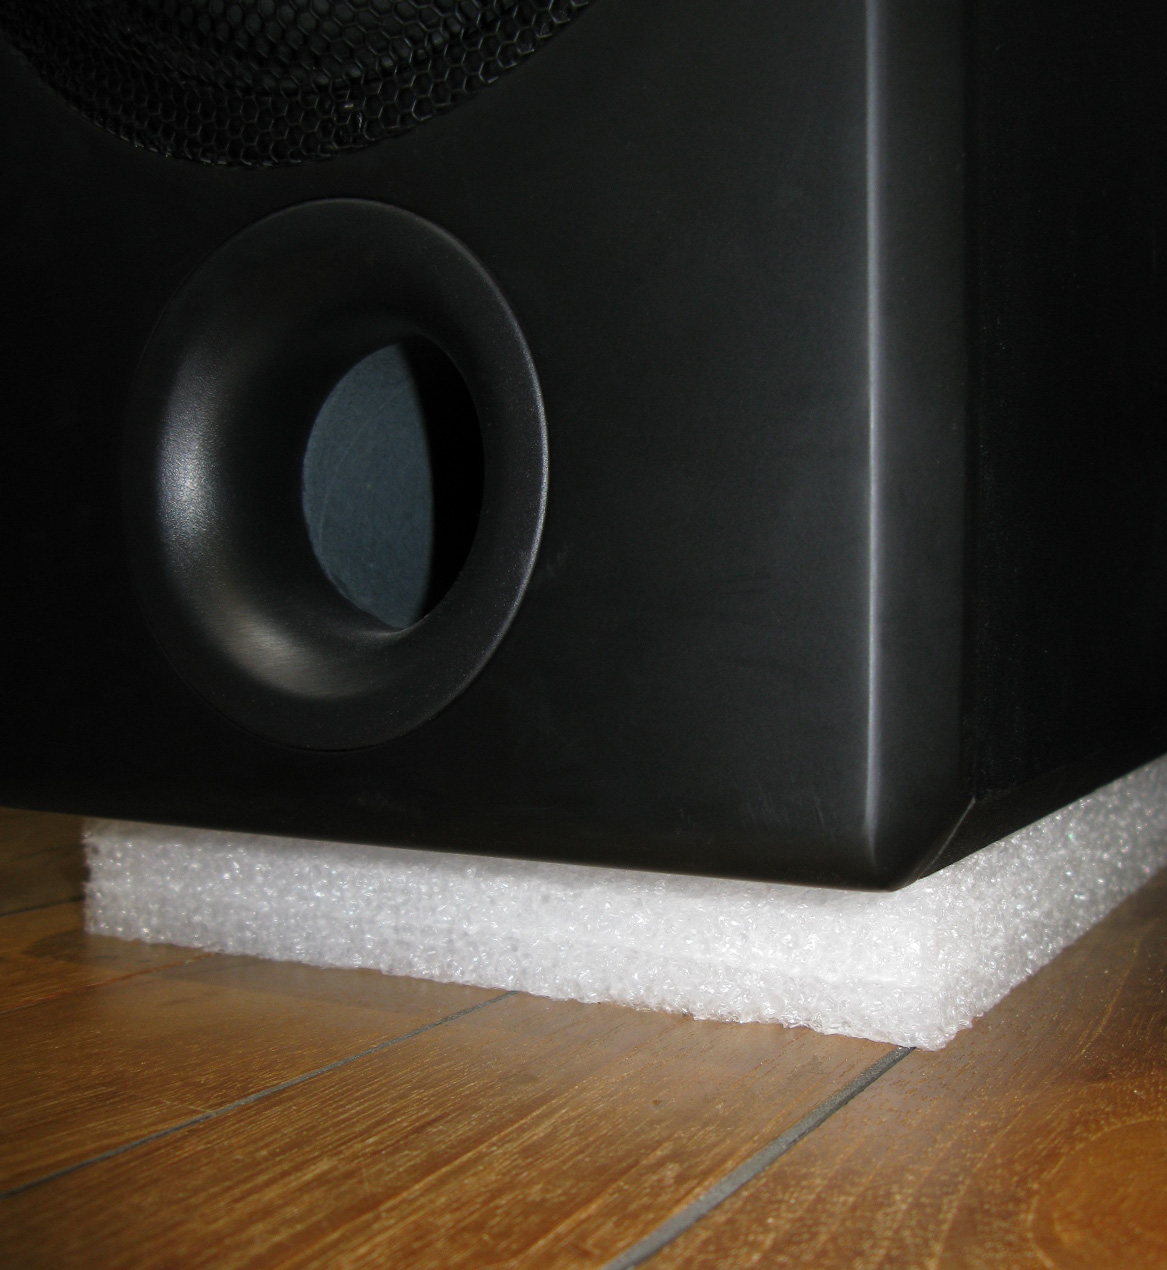 Small Apartment Mixing Keeping A Subwoofer From Bothering